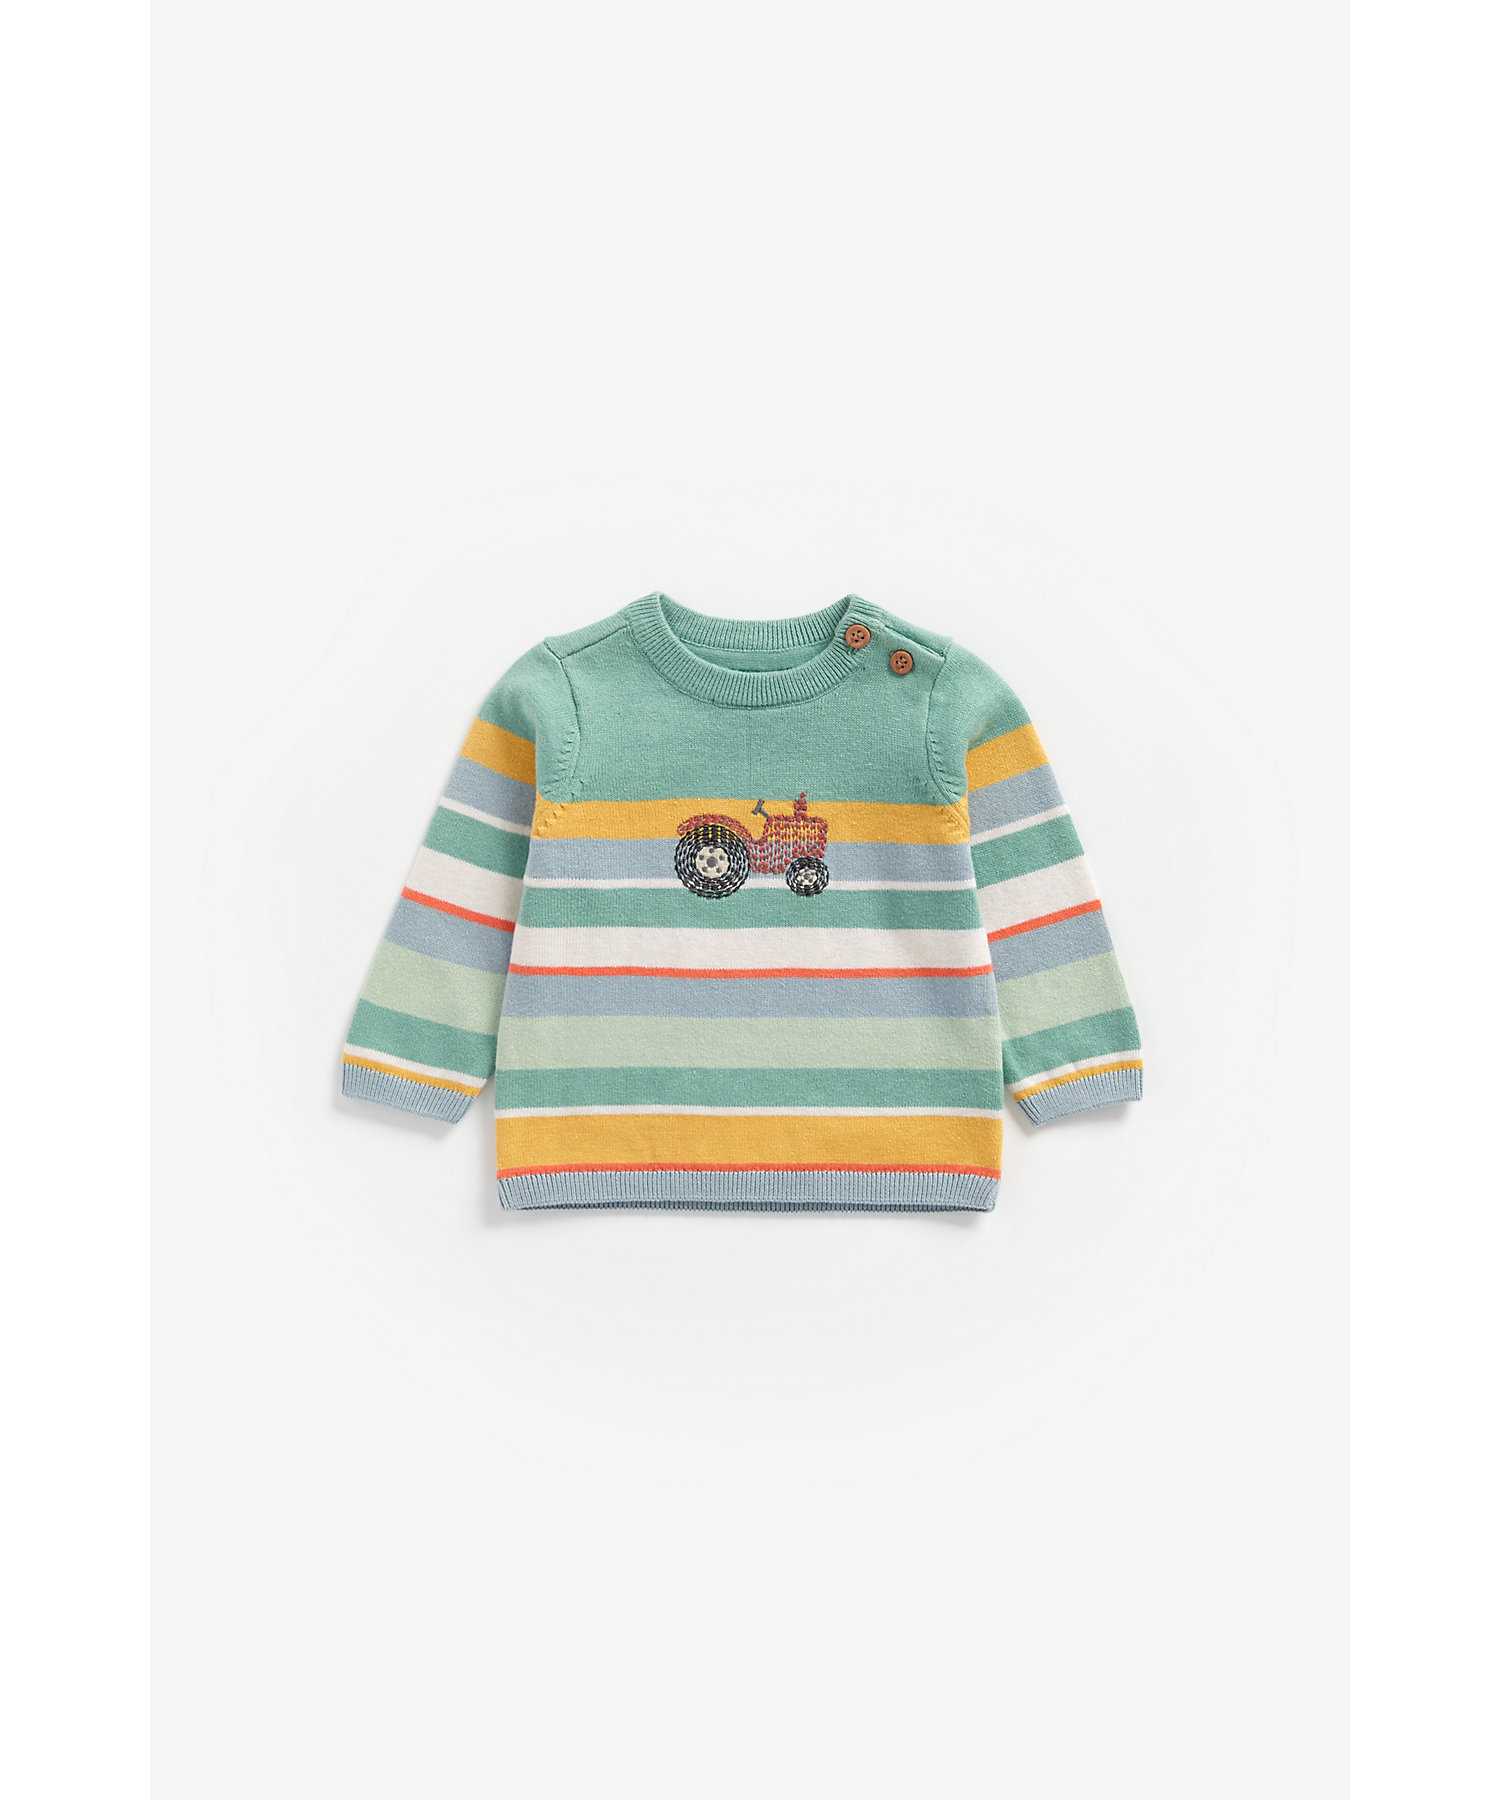 Mothercare   Boys Full Sleeves Sweater Tractor Embroidery - Multicolor